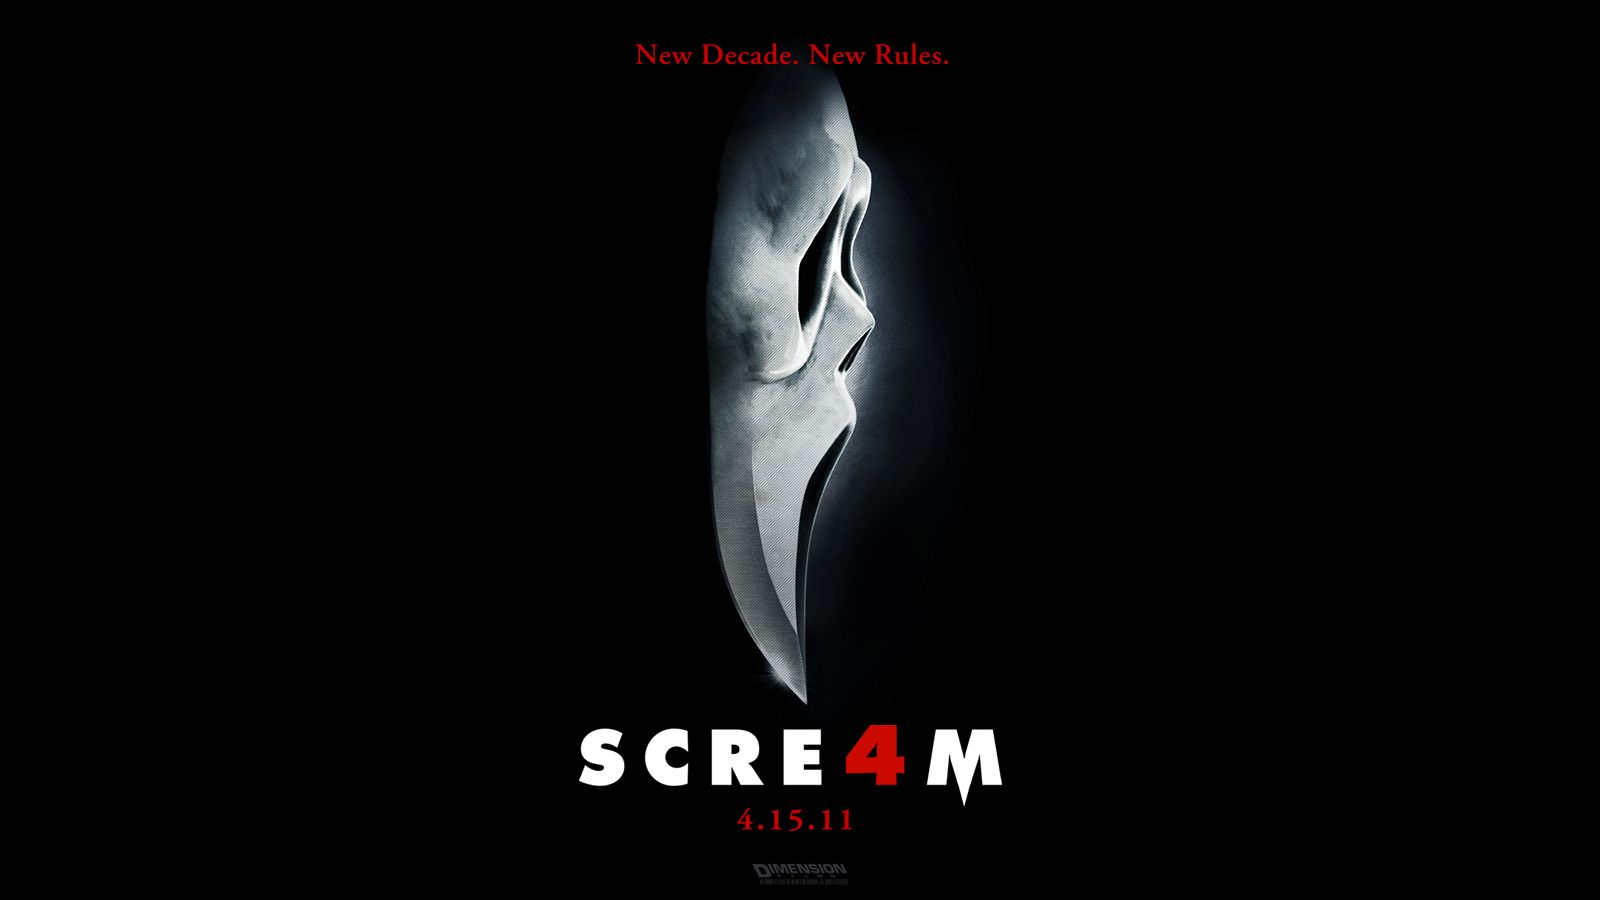 For genre enthusiasts, Scream is a hard left lead followed by a right cross, a horror movie that slices it's way through expectations and, a sequel that takes a stab at altering the shape of horror films for another decade.